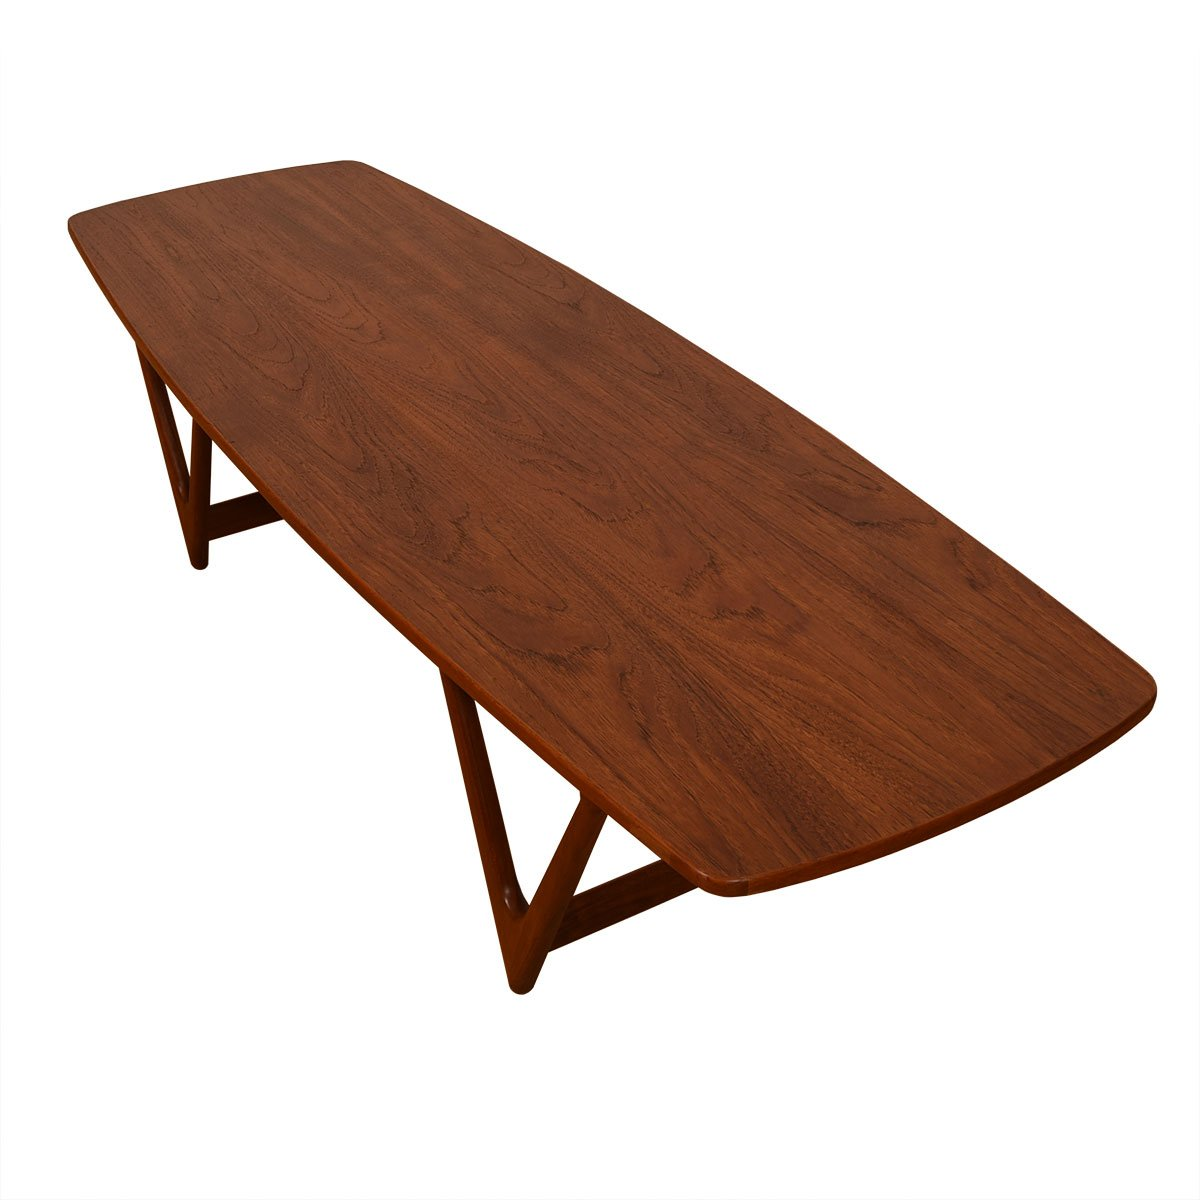 "Danish Teak Bowed Shape ""V-Leg"" Coffee Table"